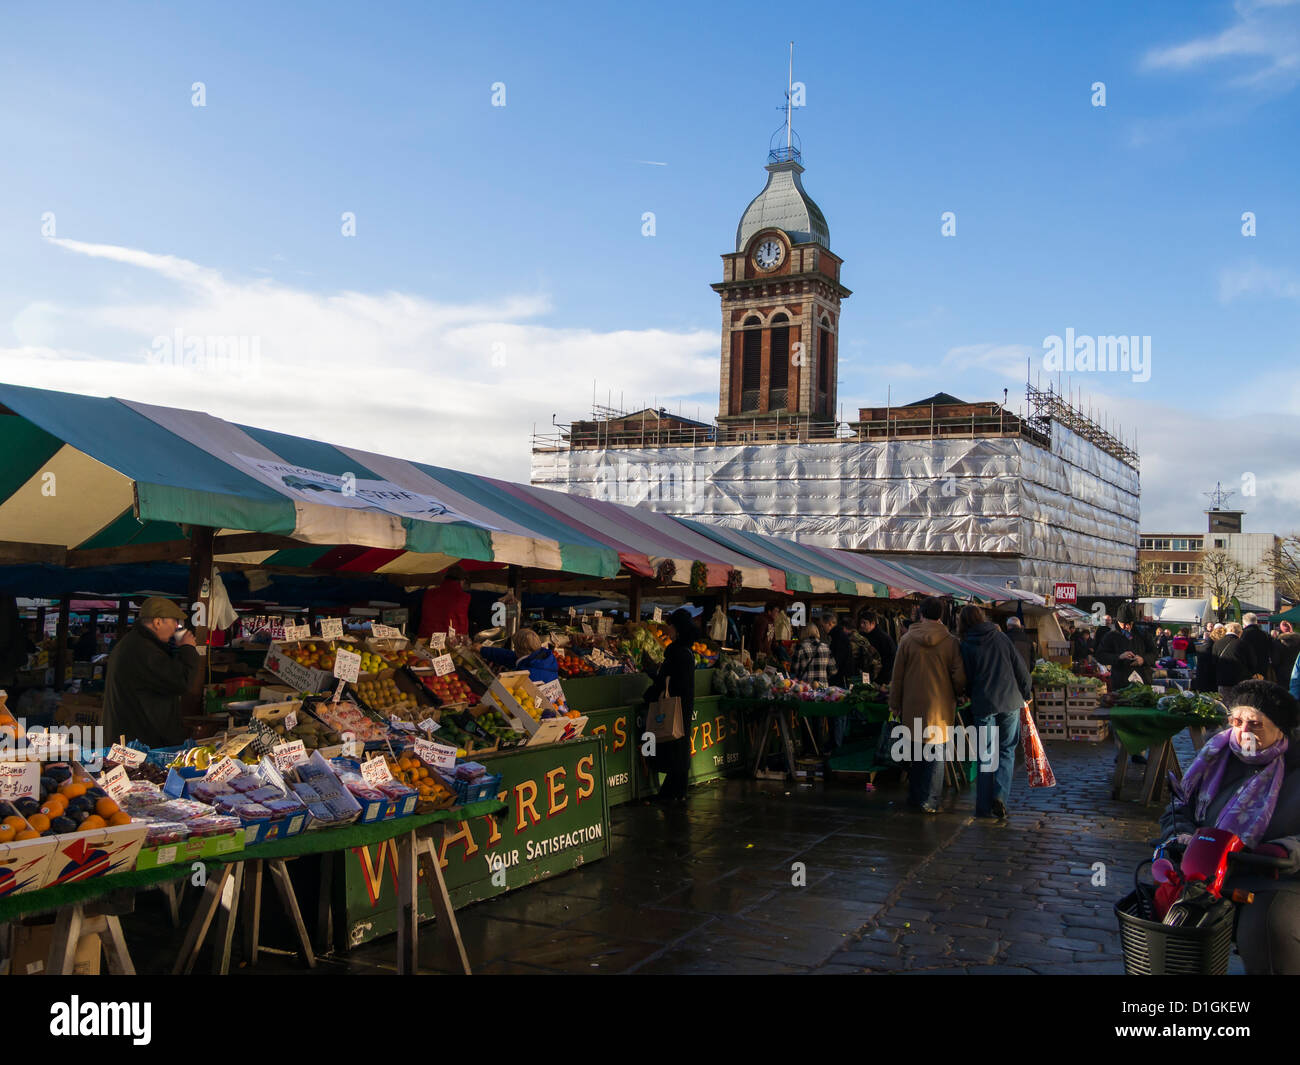 Chesterfield market hall covered in scaffold and sheeting during major refurbishment work Derbyshire England Stock Photo